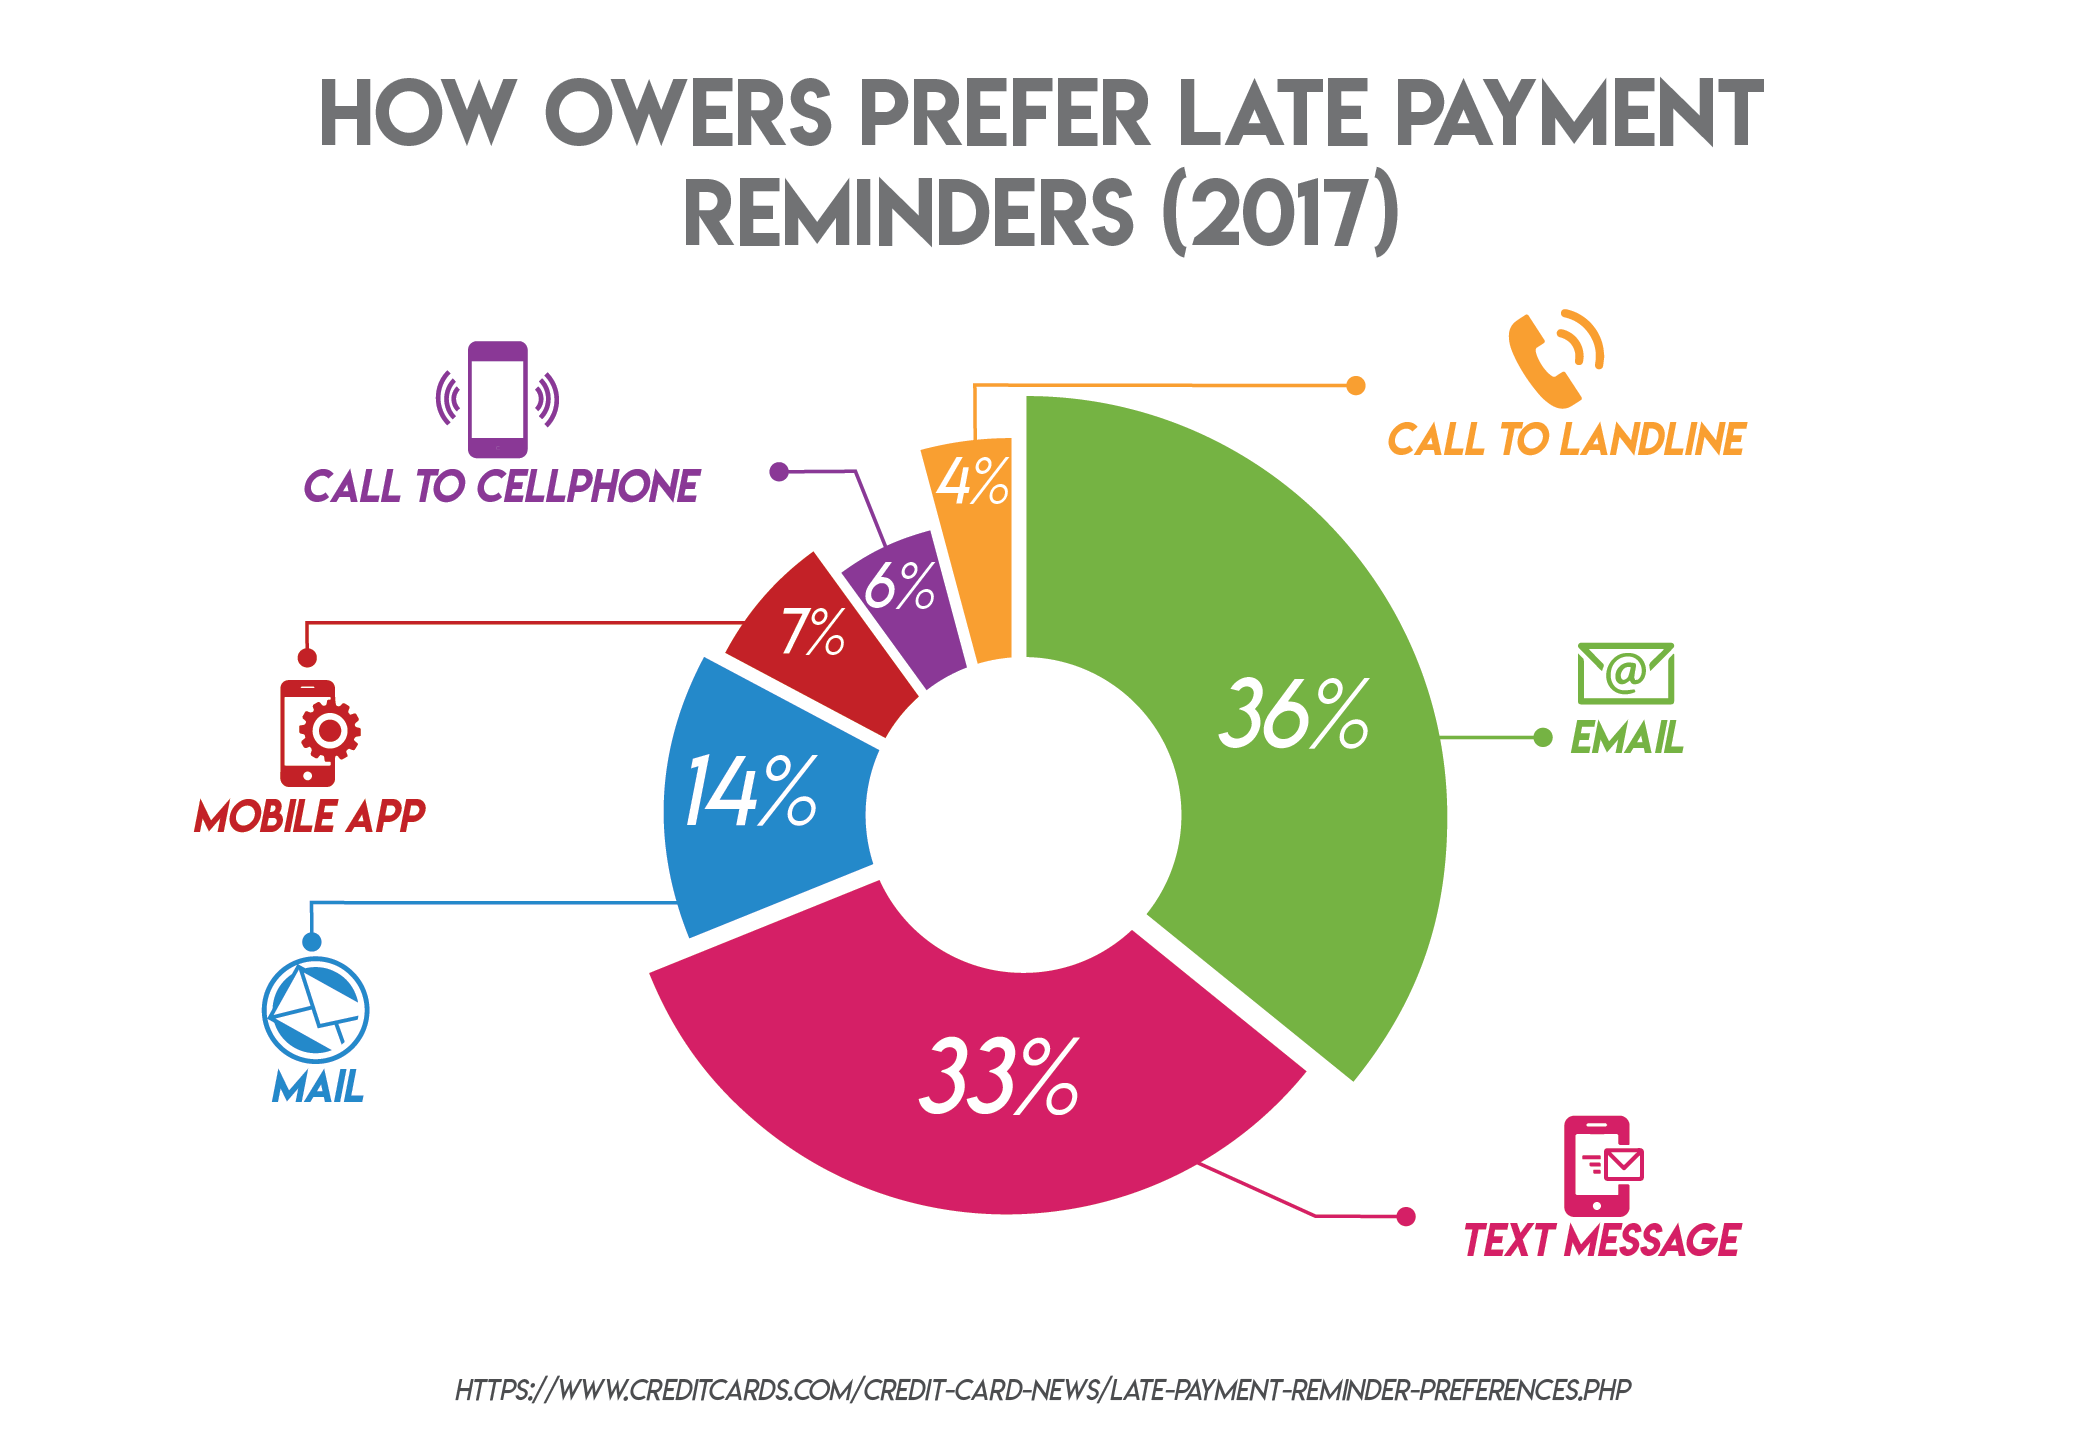 How Owers Prefer Late Payment Reminders (2017)